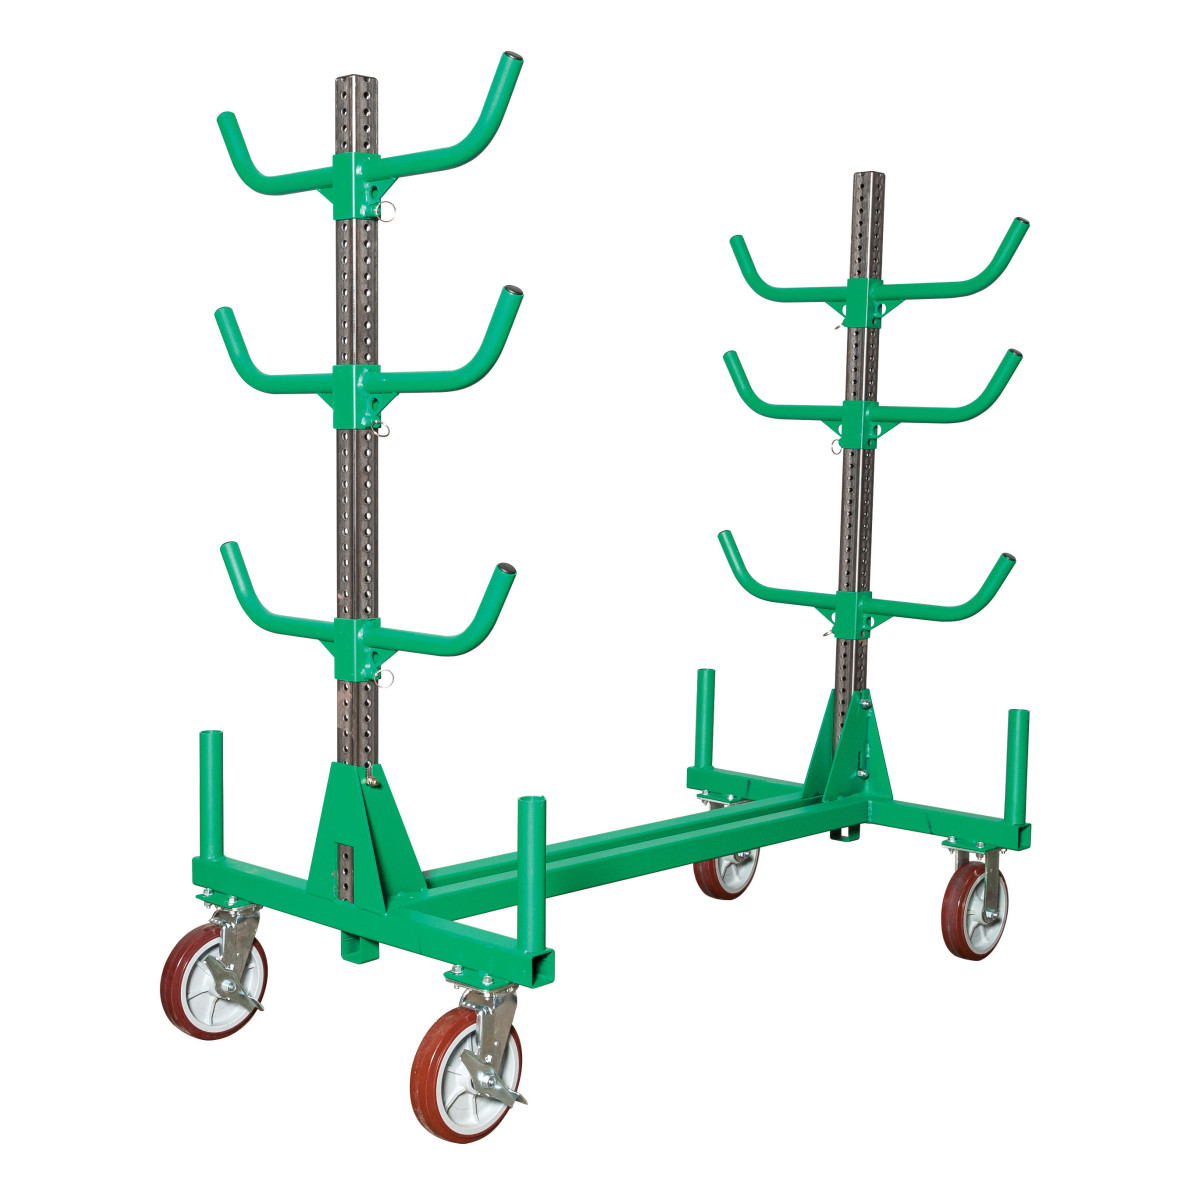 Greenlee 553 BENT CONDUIT CART ASSEMBLY(PKGD)